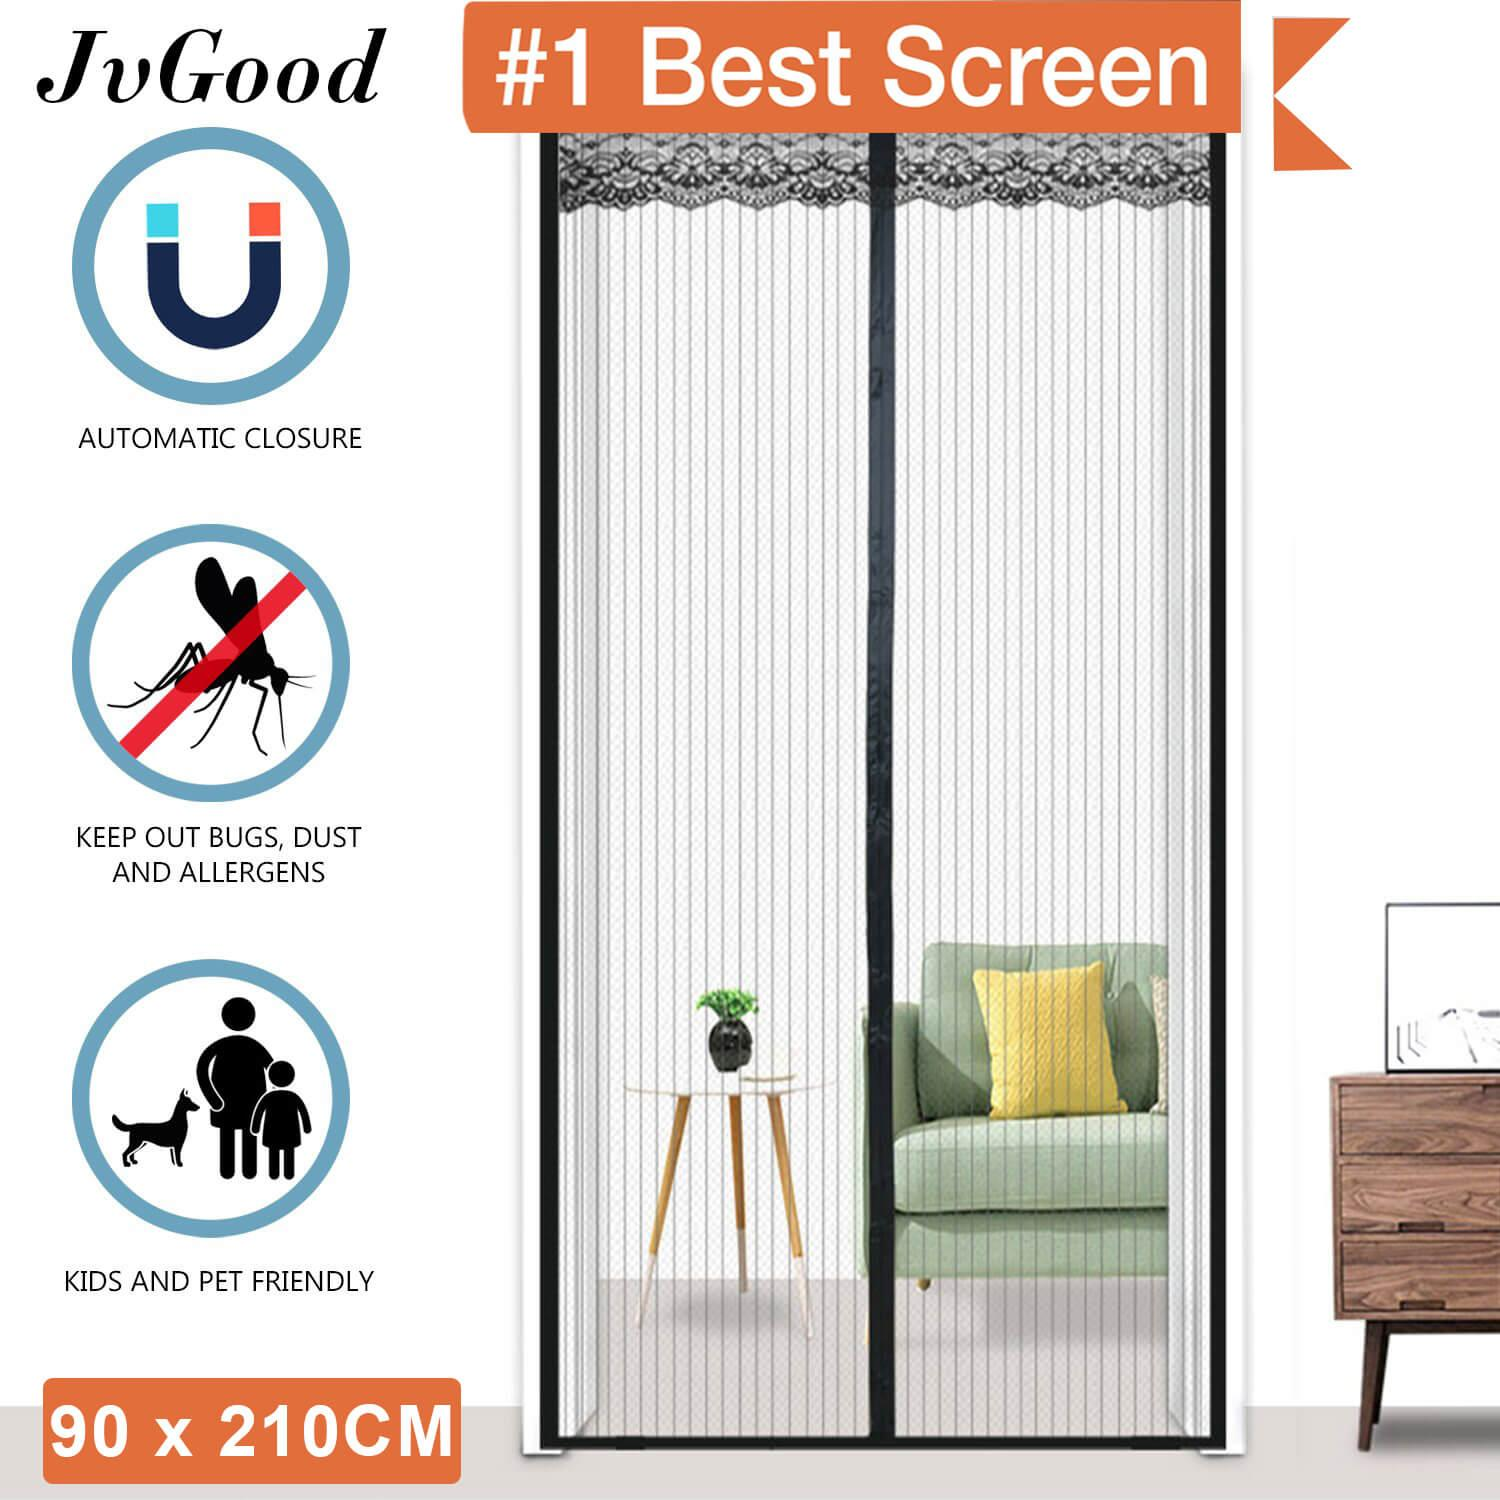 "JvGood Magnetic Screen Door with Heavy Duty Mesh Curtain Full Frame Velcro Mosquito Door Curtain Hand Free Close Open Automatically Bugs Off Pets Friendly Fit Door (90 x 210cm/35 x 83"")"